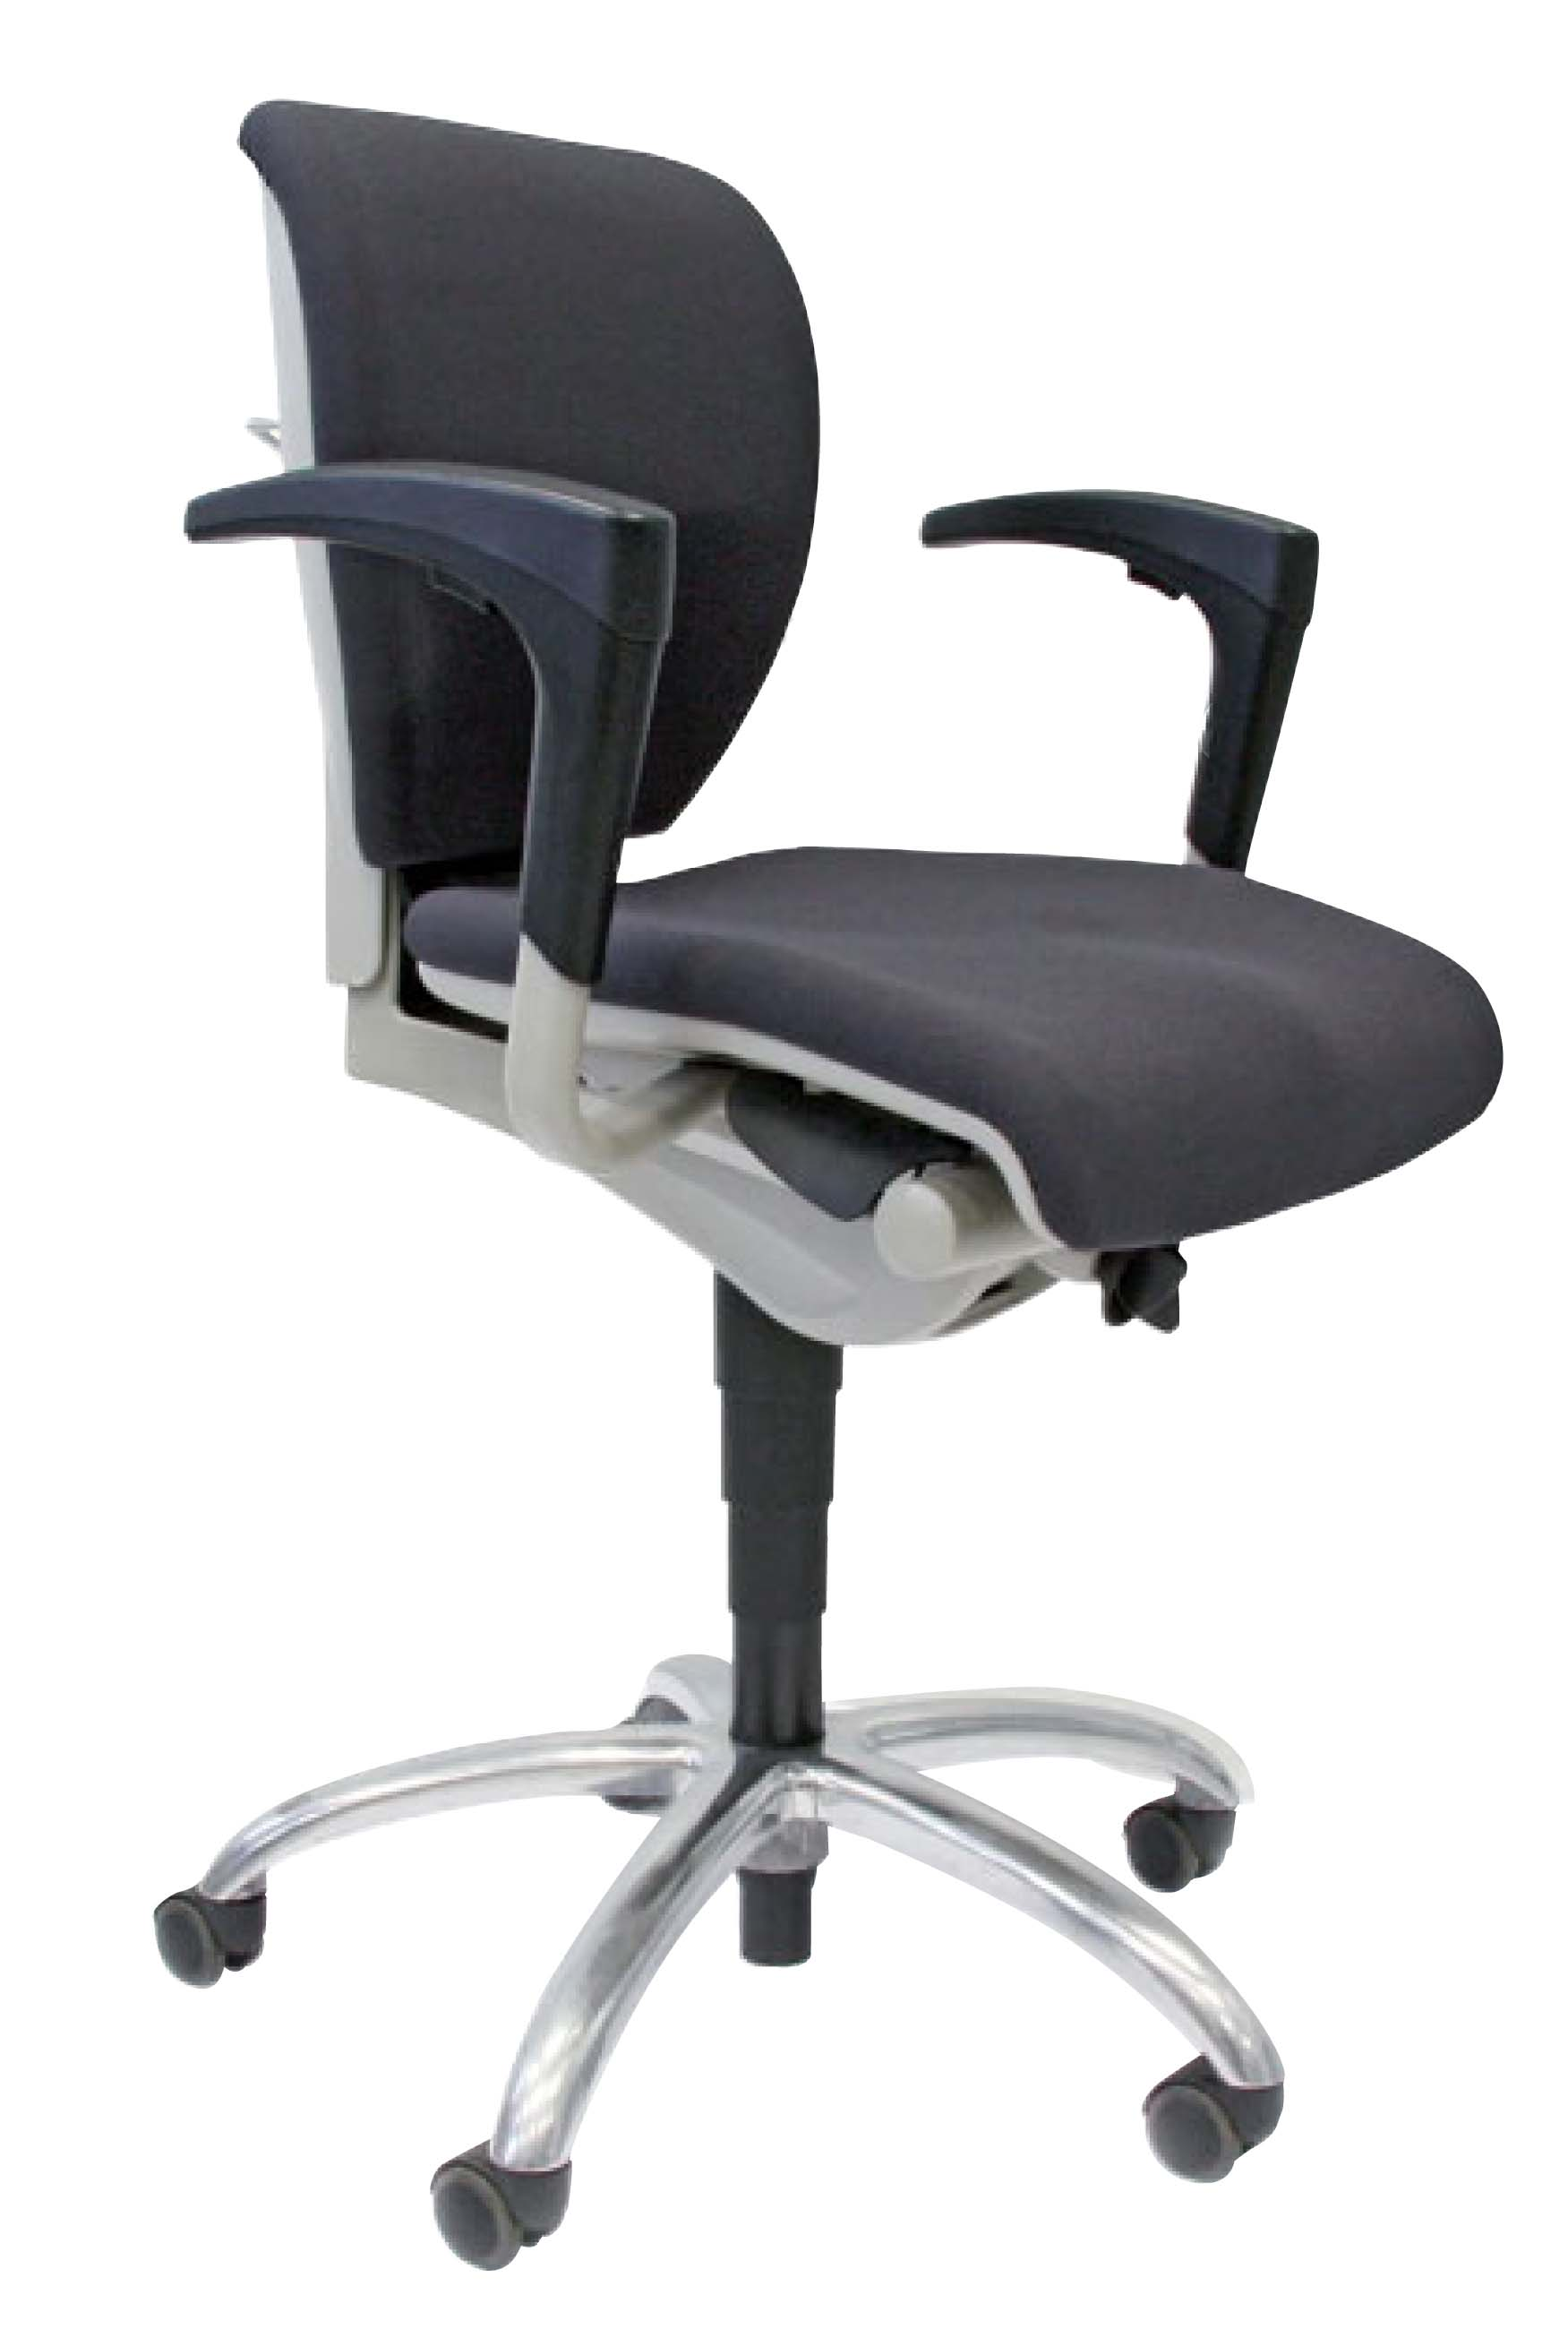 KaVo SENsit office chair